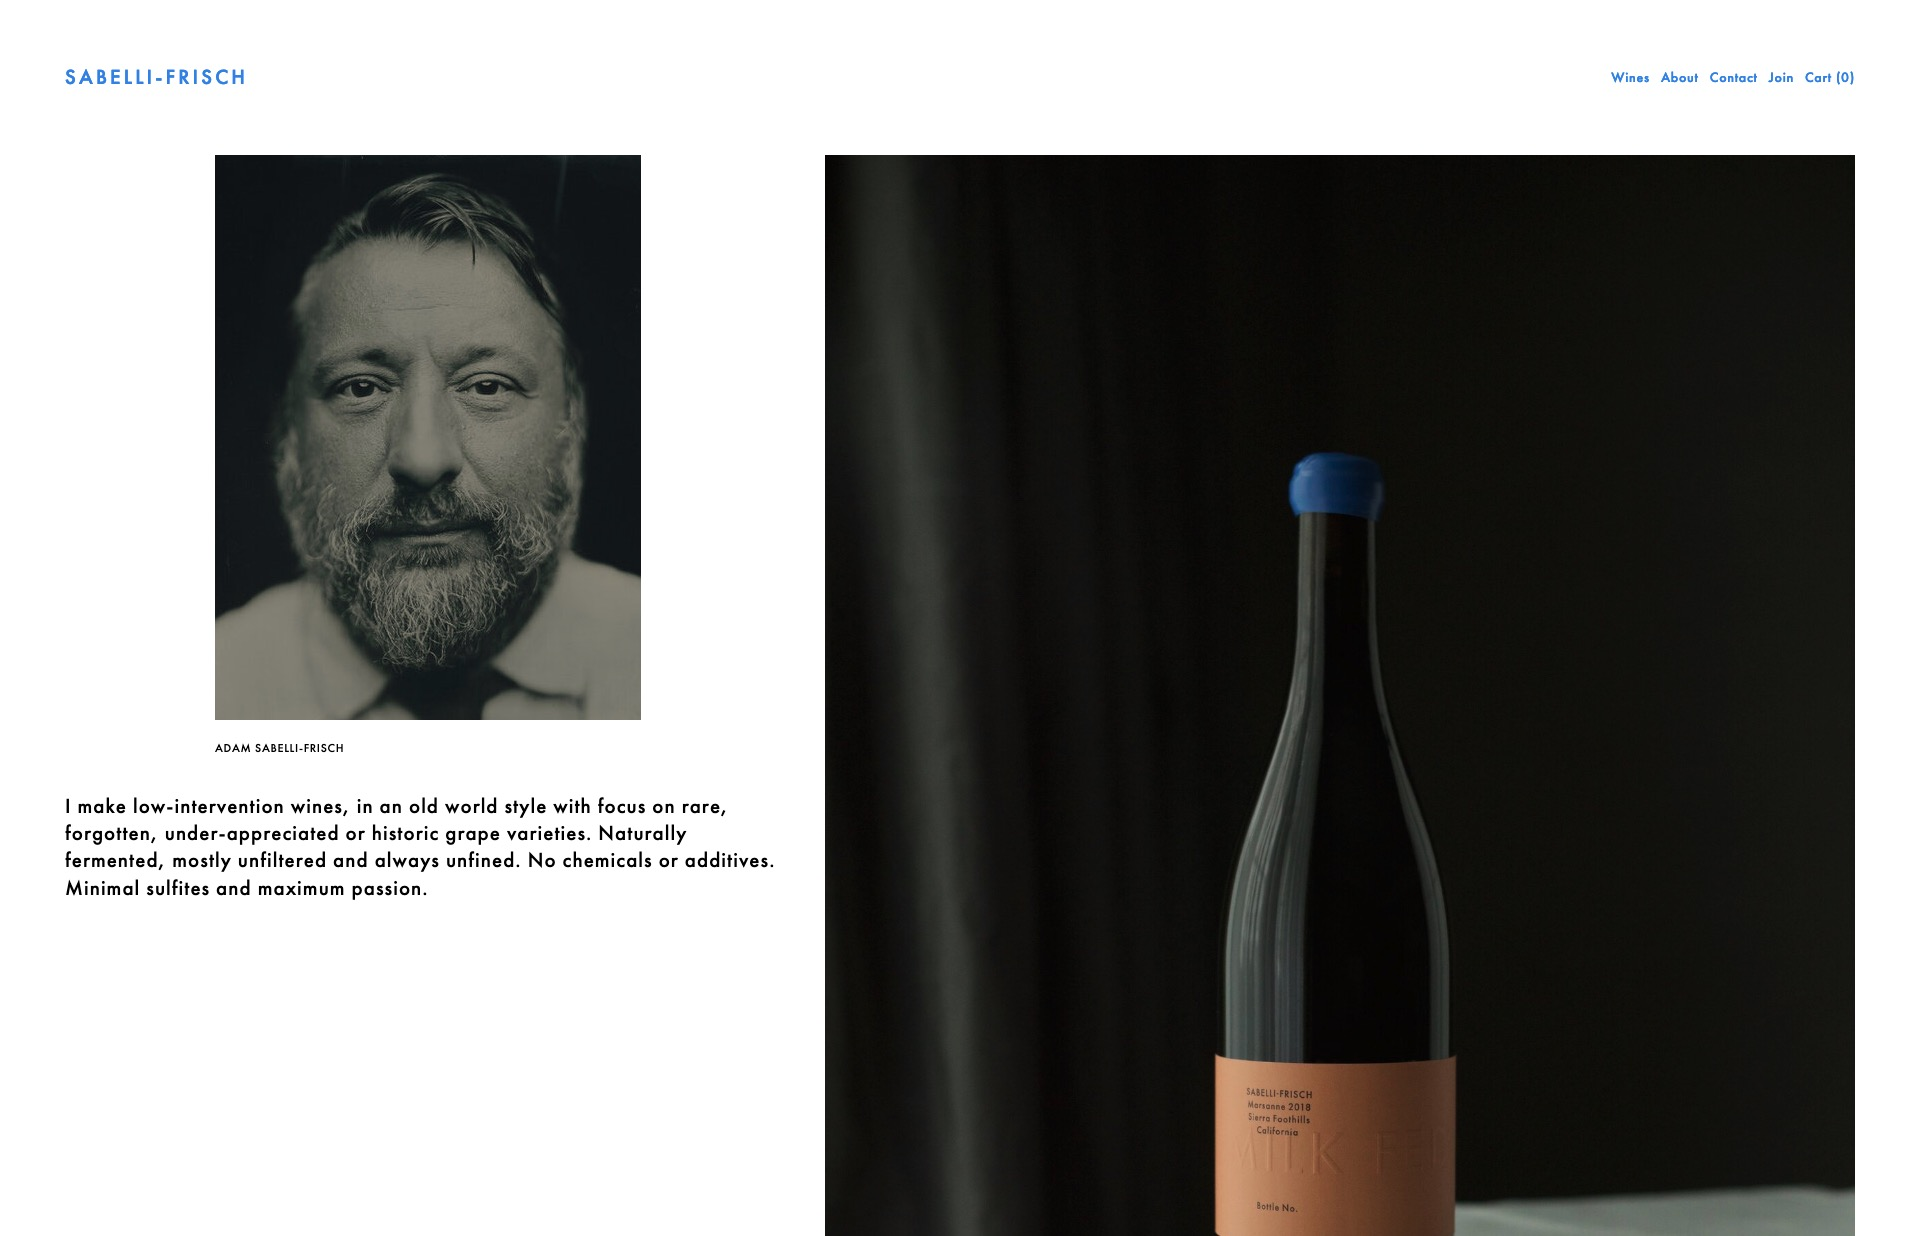 Screenshot of the website SABELLI-FRISCH, featured on The Gallery, a curated collection of minimal websites